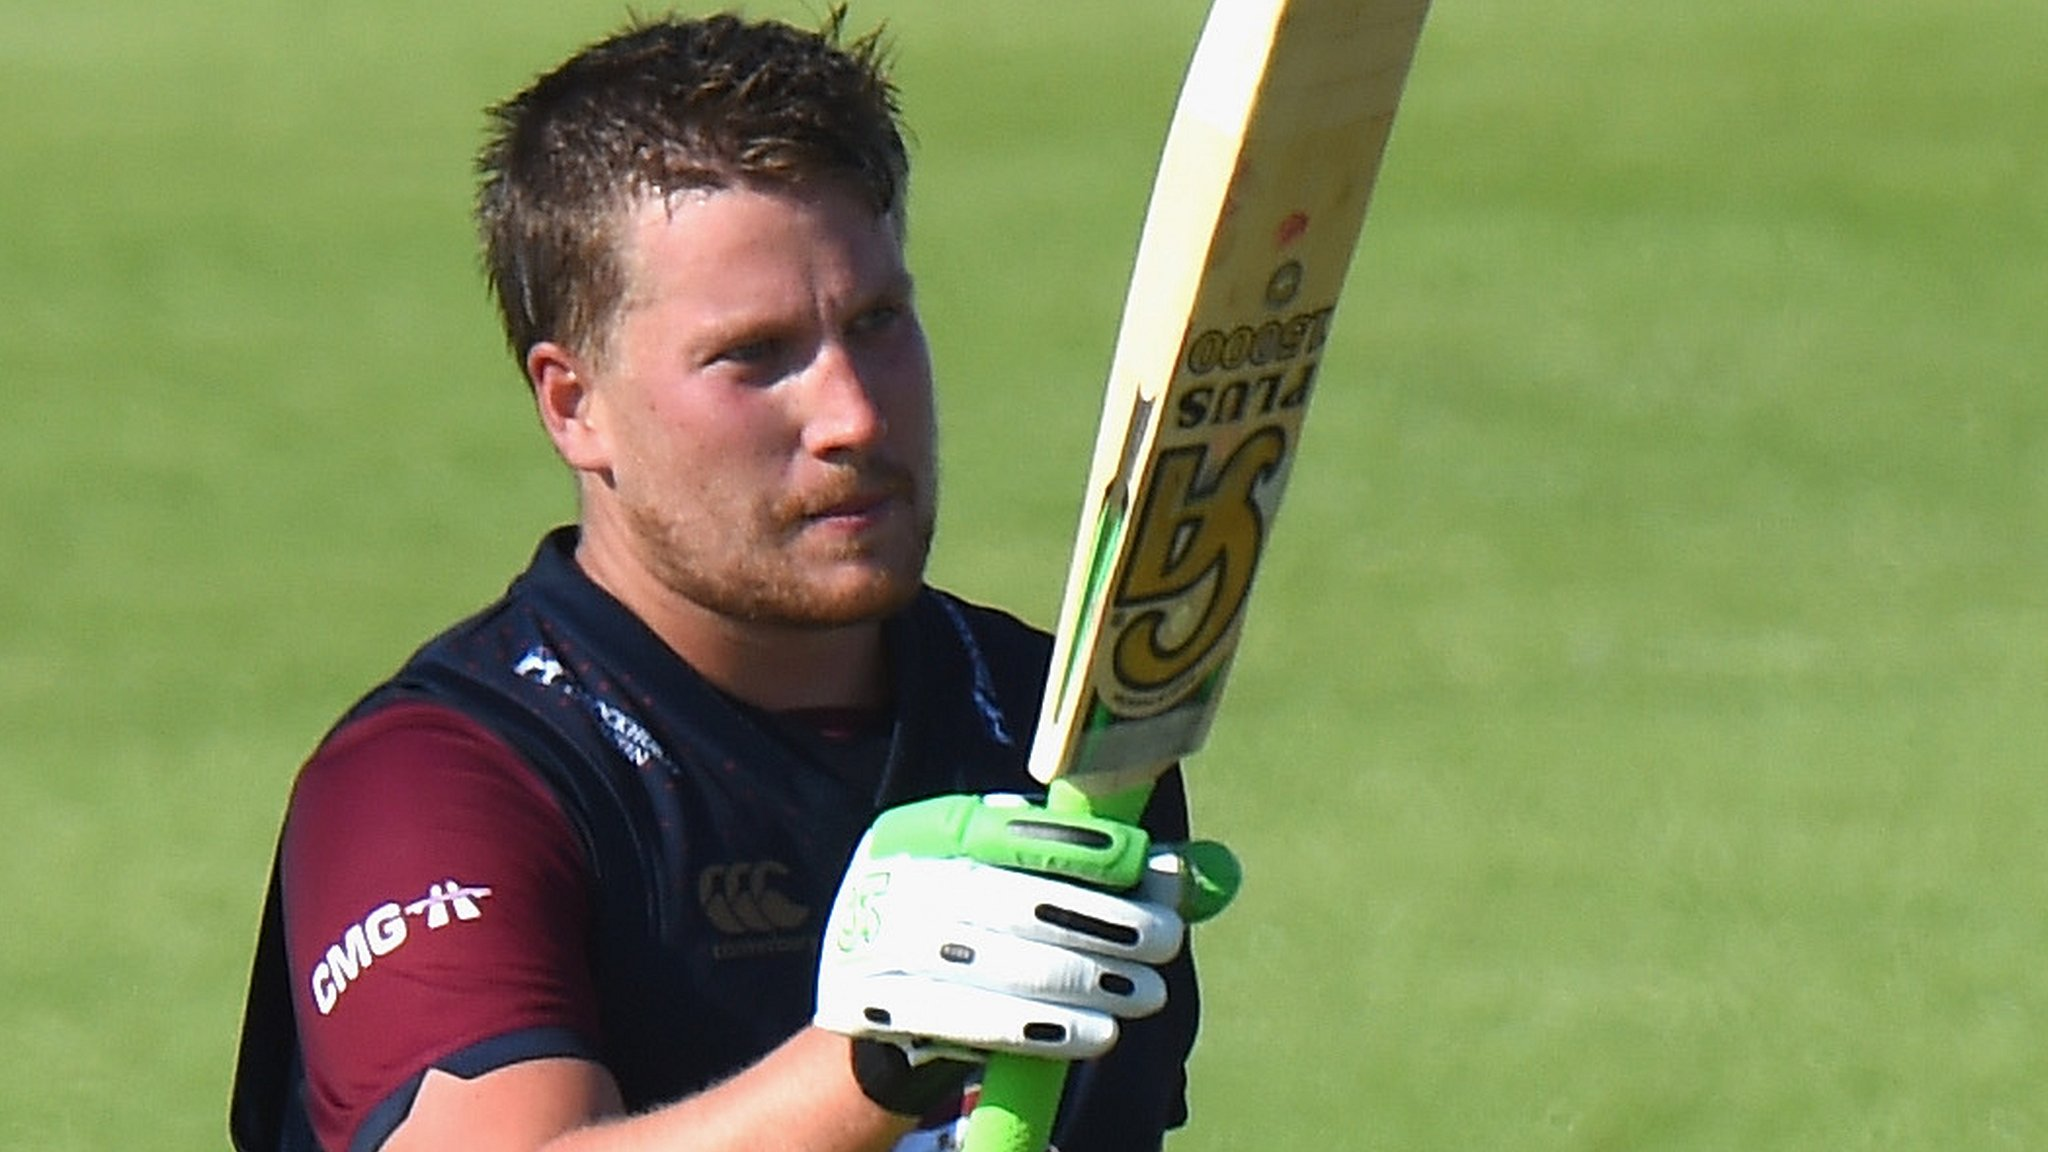 Josh Cobb: Northamptonshire batsman extends deal until 2020